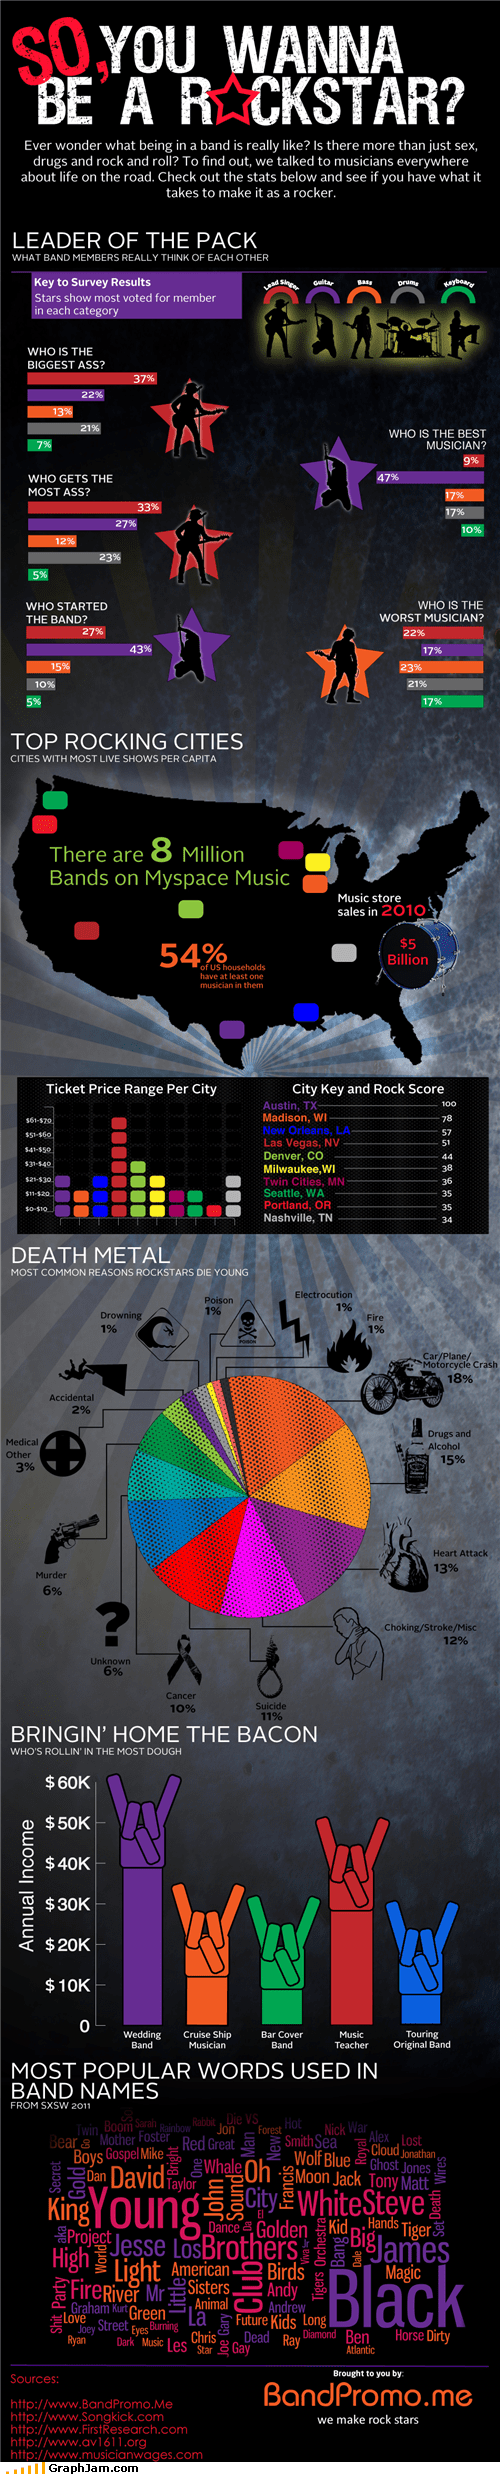 band,infographic,rock star,rockstar,Statistics